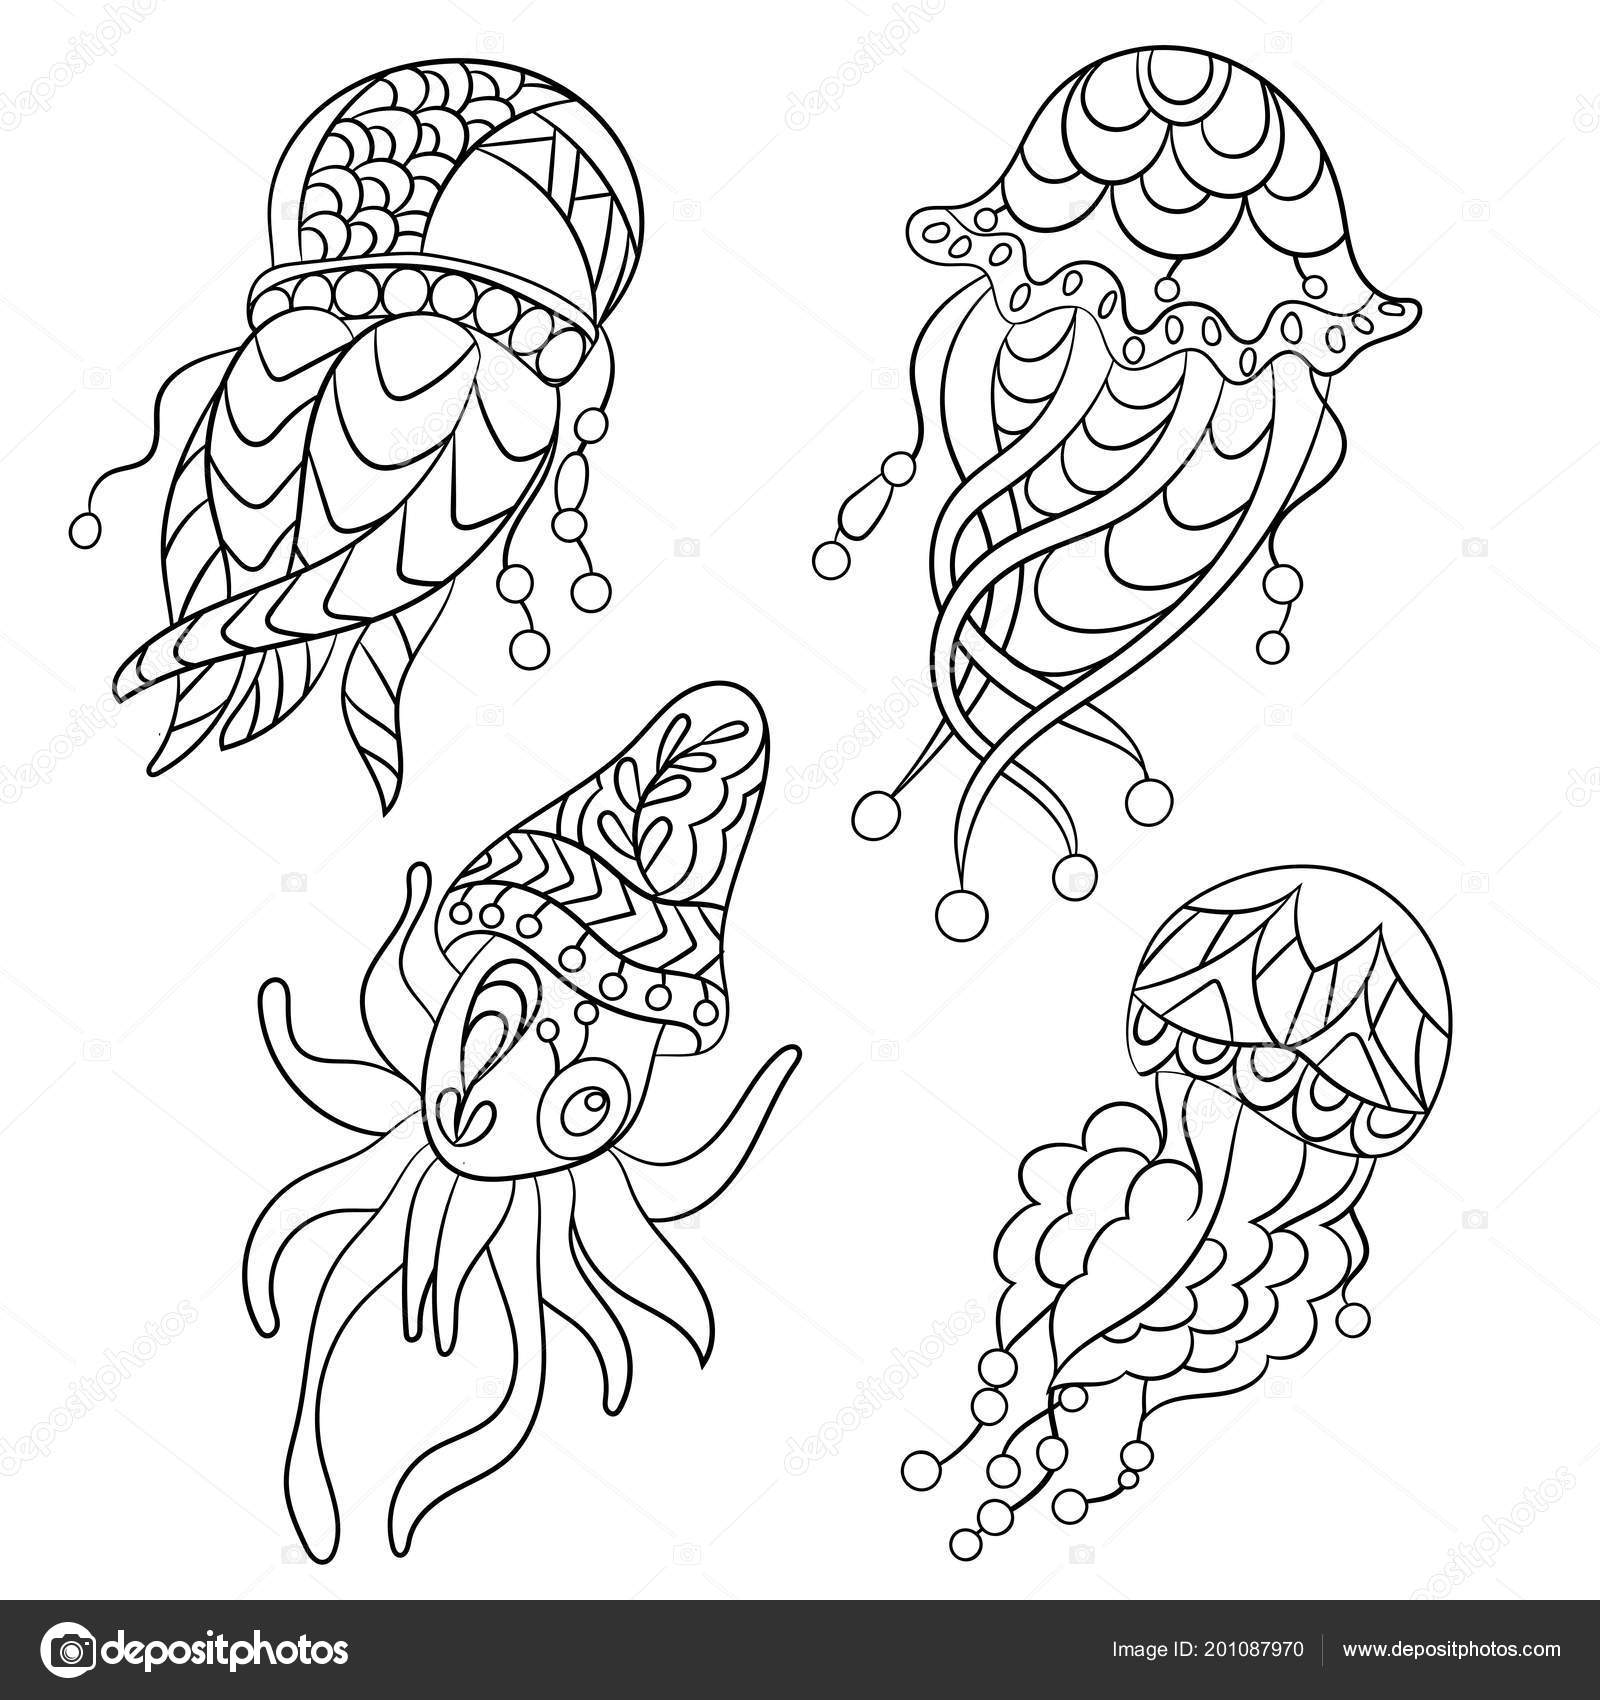 Coloring Pages Vector Graphic Illustration Children Adults Ocean